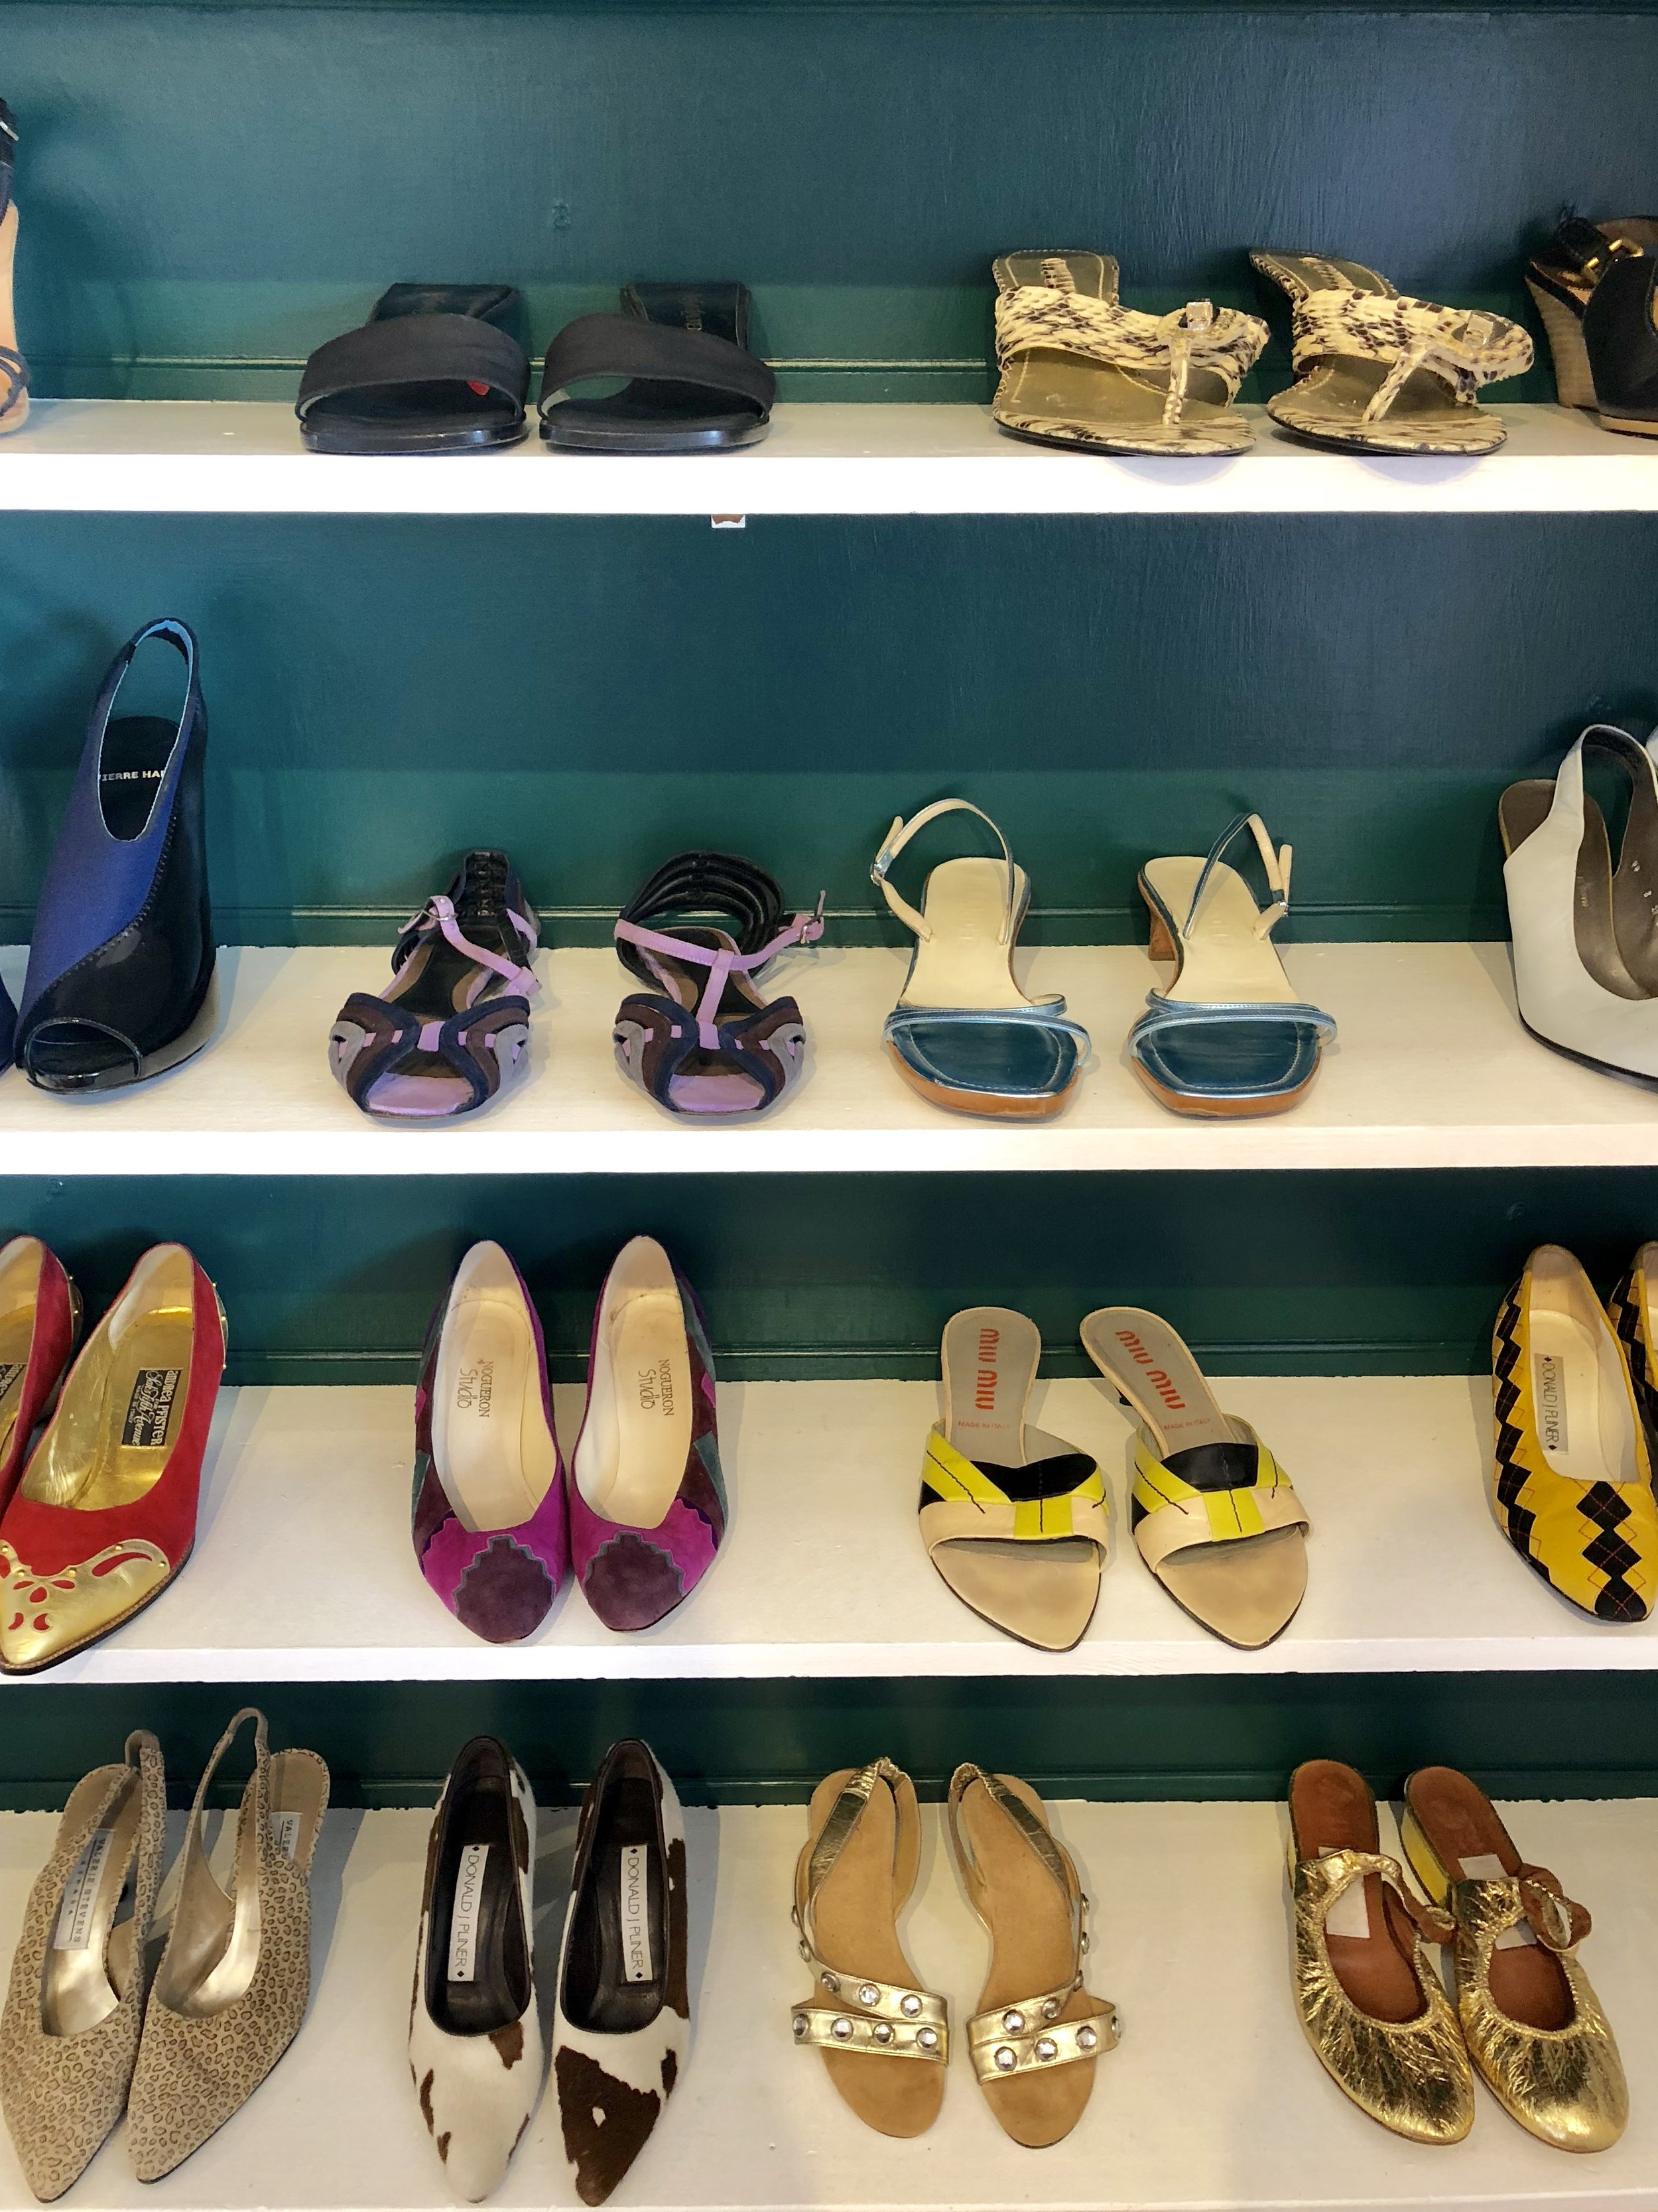 These are just some of the beautiful shoes you can find at Austin, Texas shoe shop, The Art of Shoes.